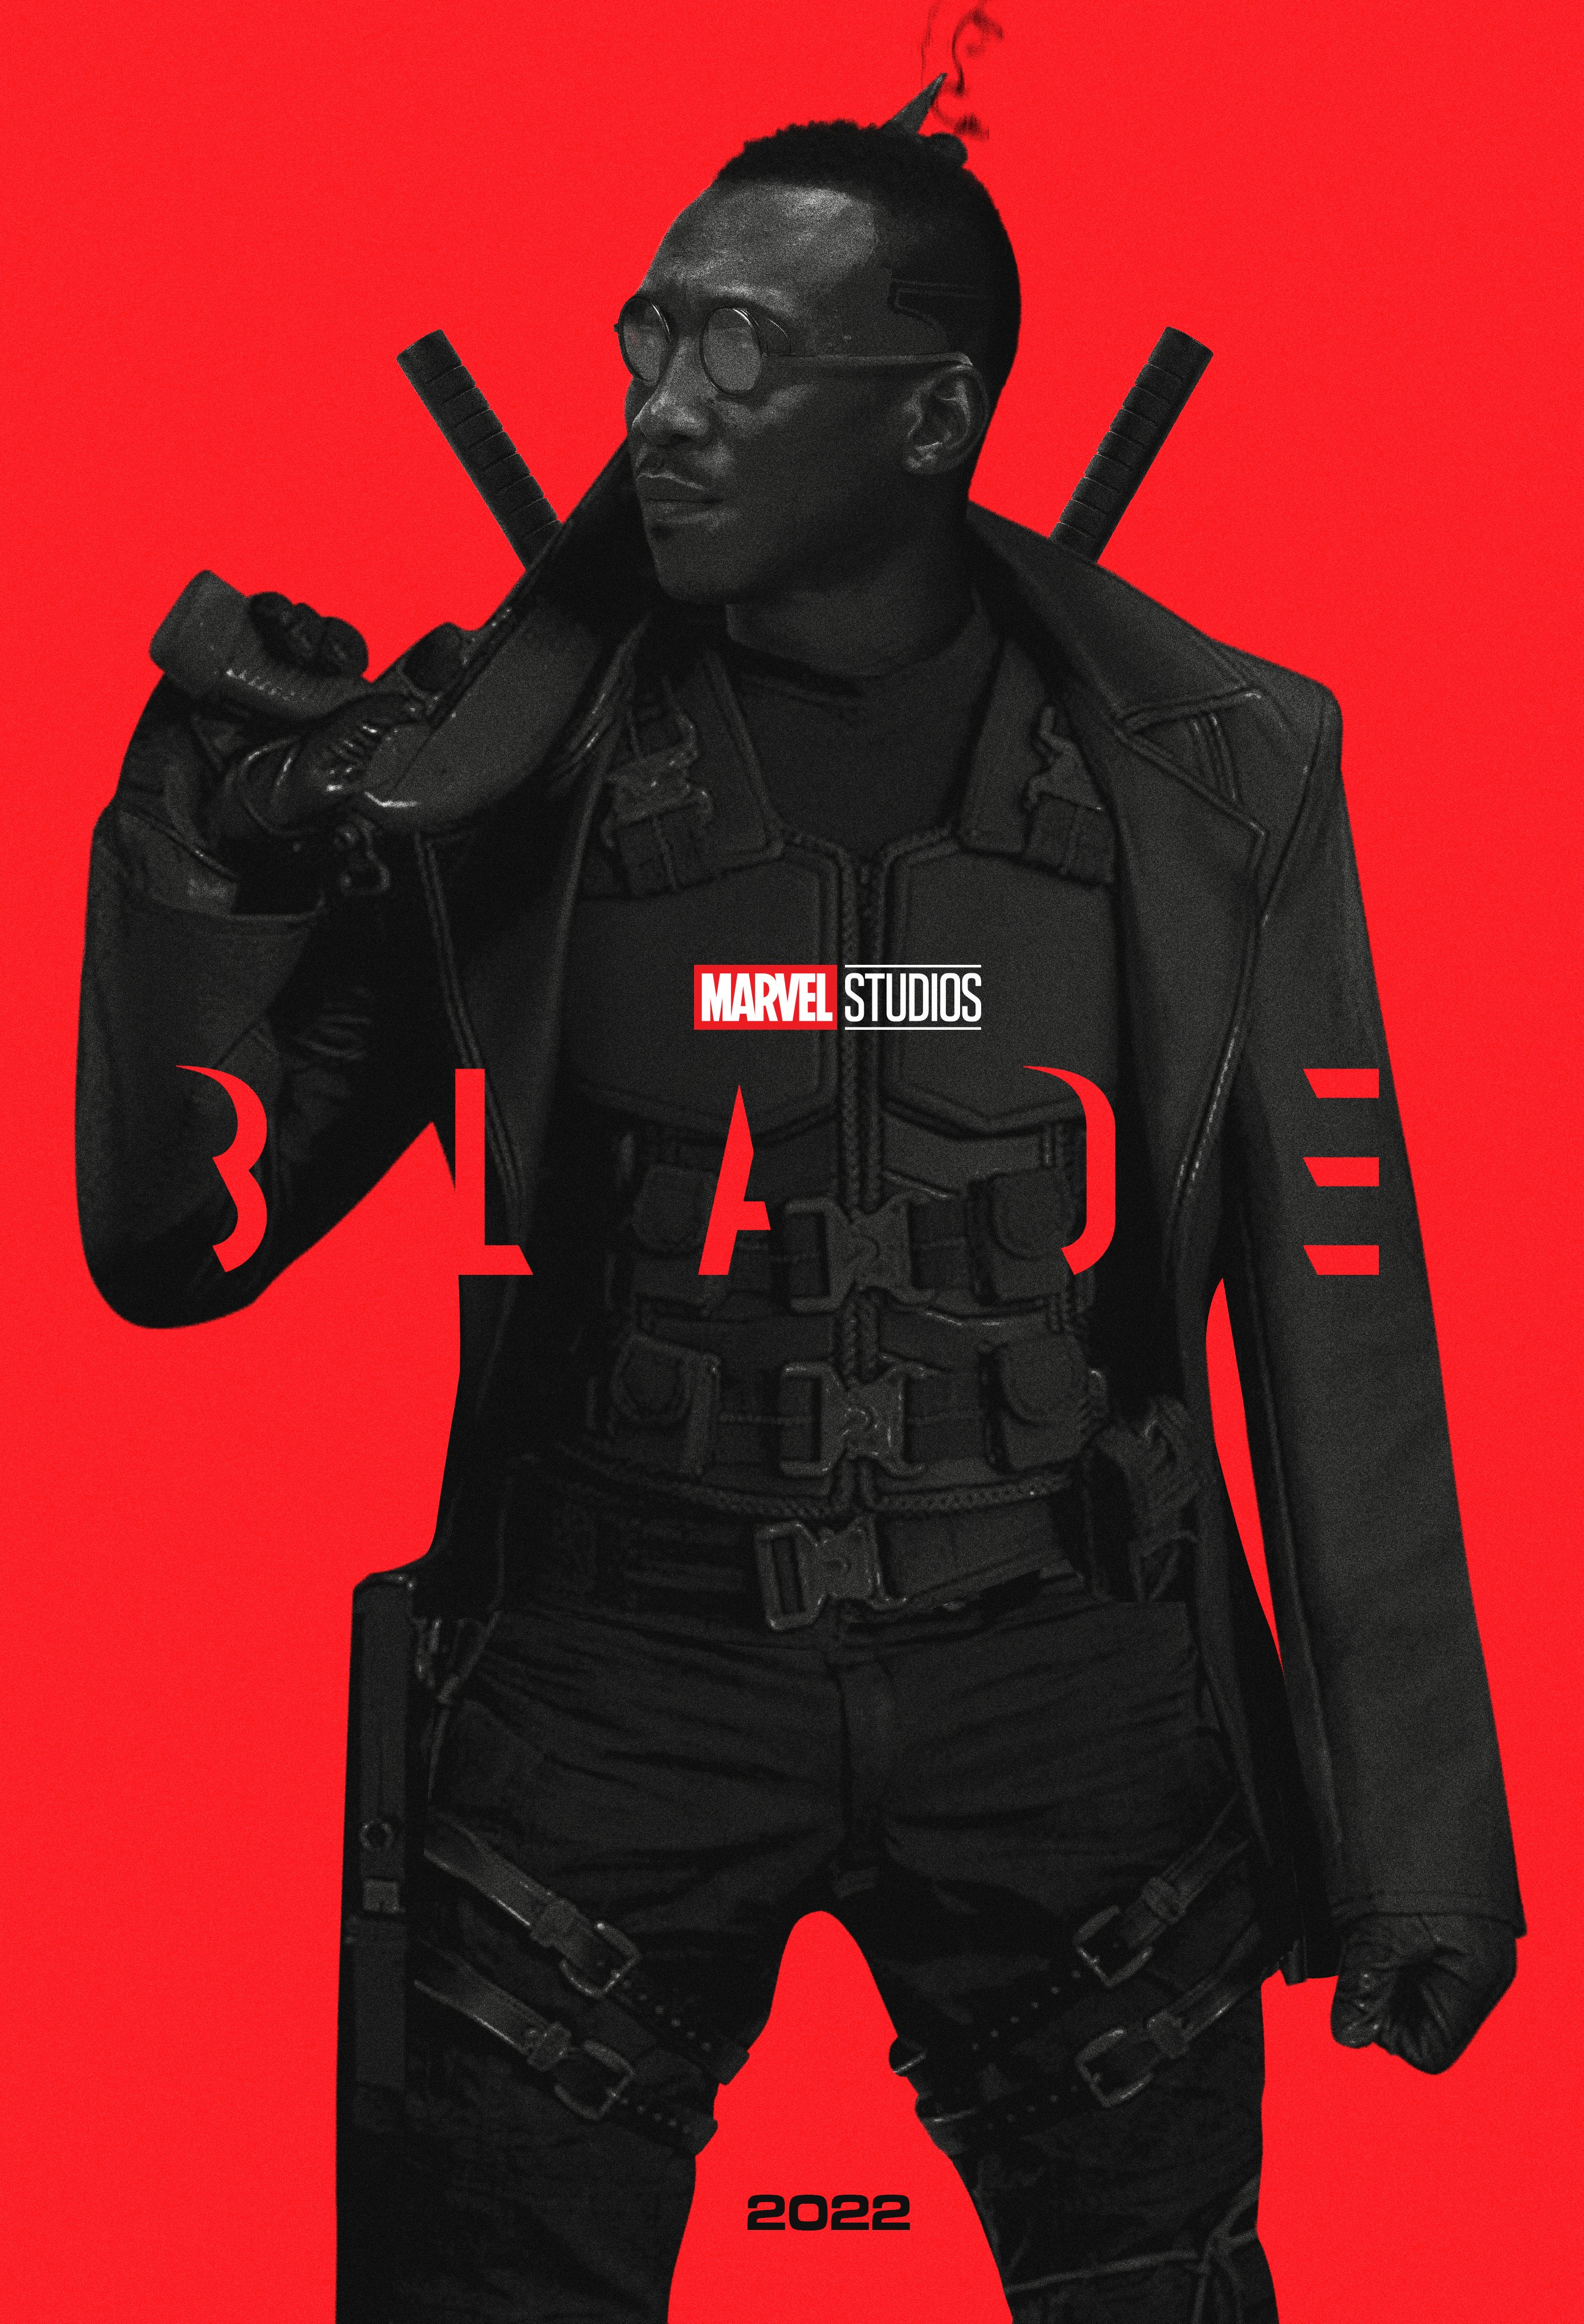 Here S A Pretty Cool Fan Poster For Marvel S Blade Reboot Starring Mahershala Ali Bloody Disgusting